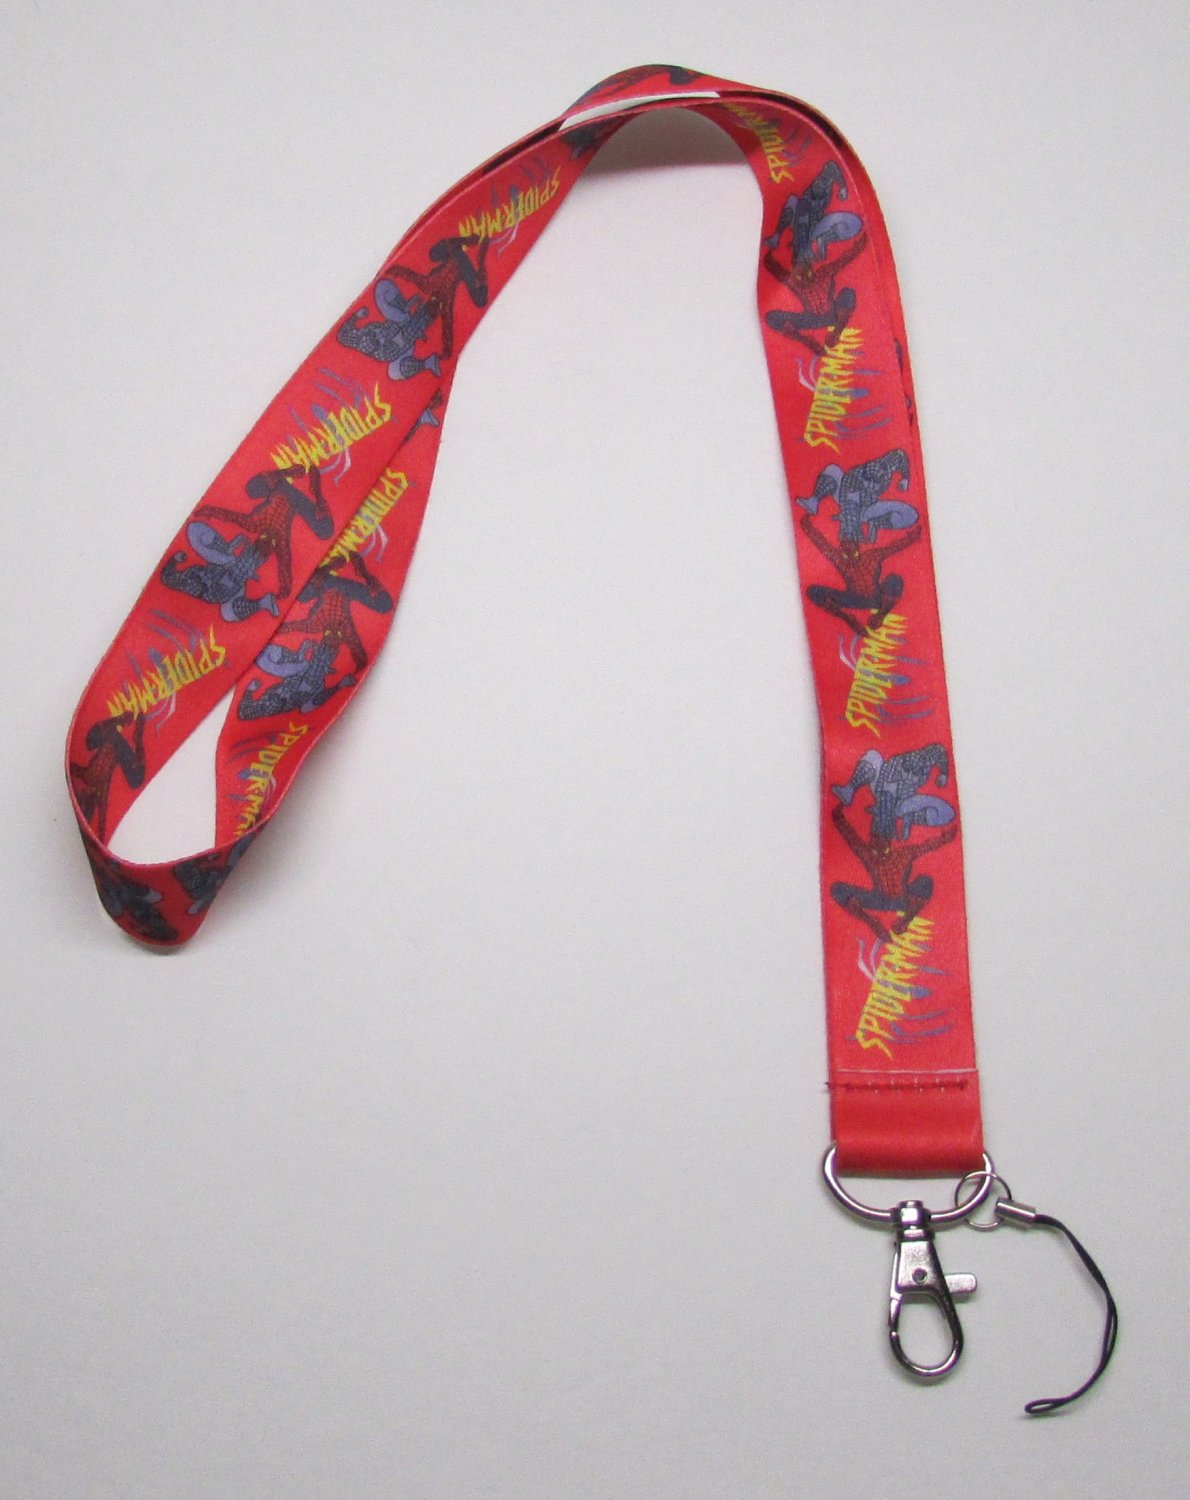 Red SPIDERMAN LANYARD KEY CHAIN Ring Keychain ID Holder NEW